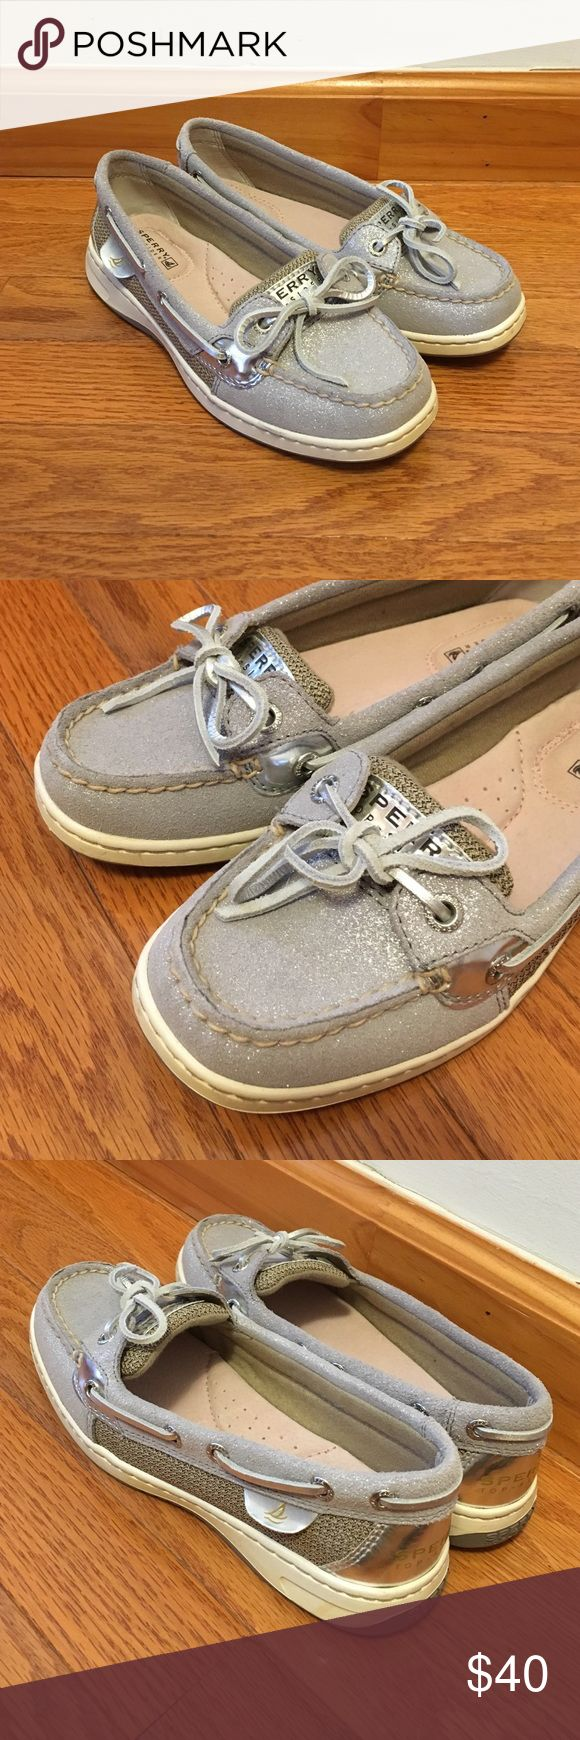 Silver Sperry Top-Sider Cute flats from Sperry - pretty silver design. Worn ONCE. Condition: New! Sperry Top-Sider Shoes Flats & Loafers